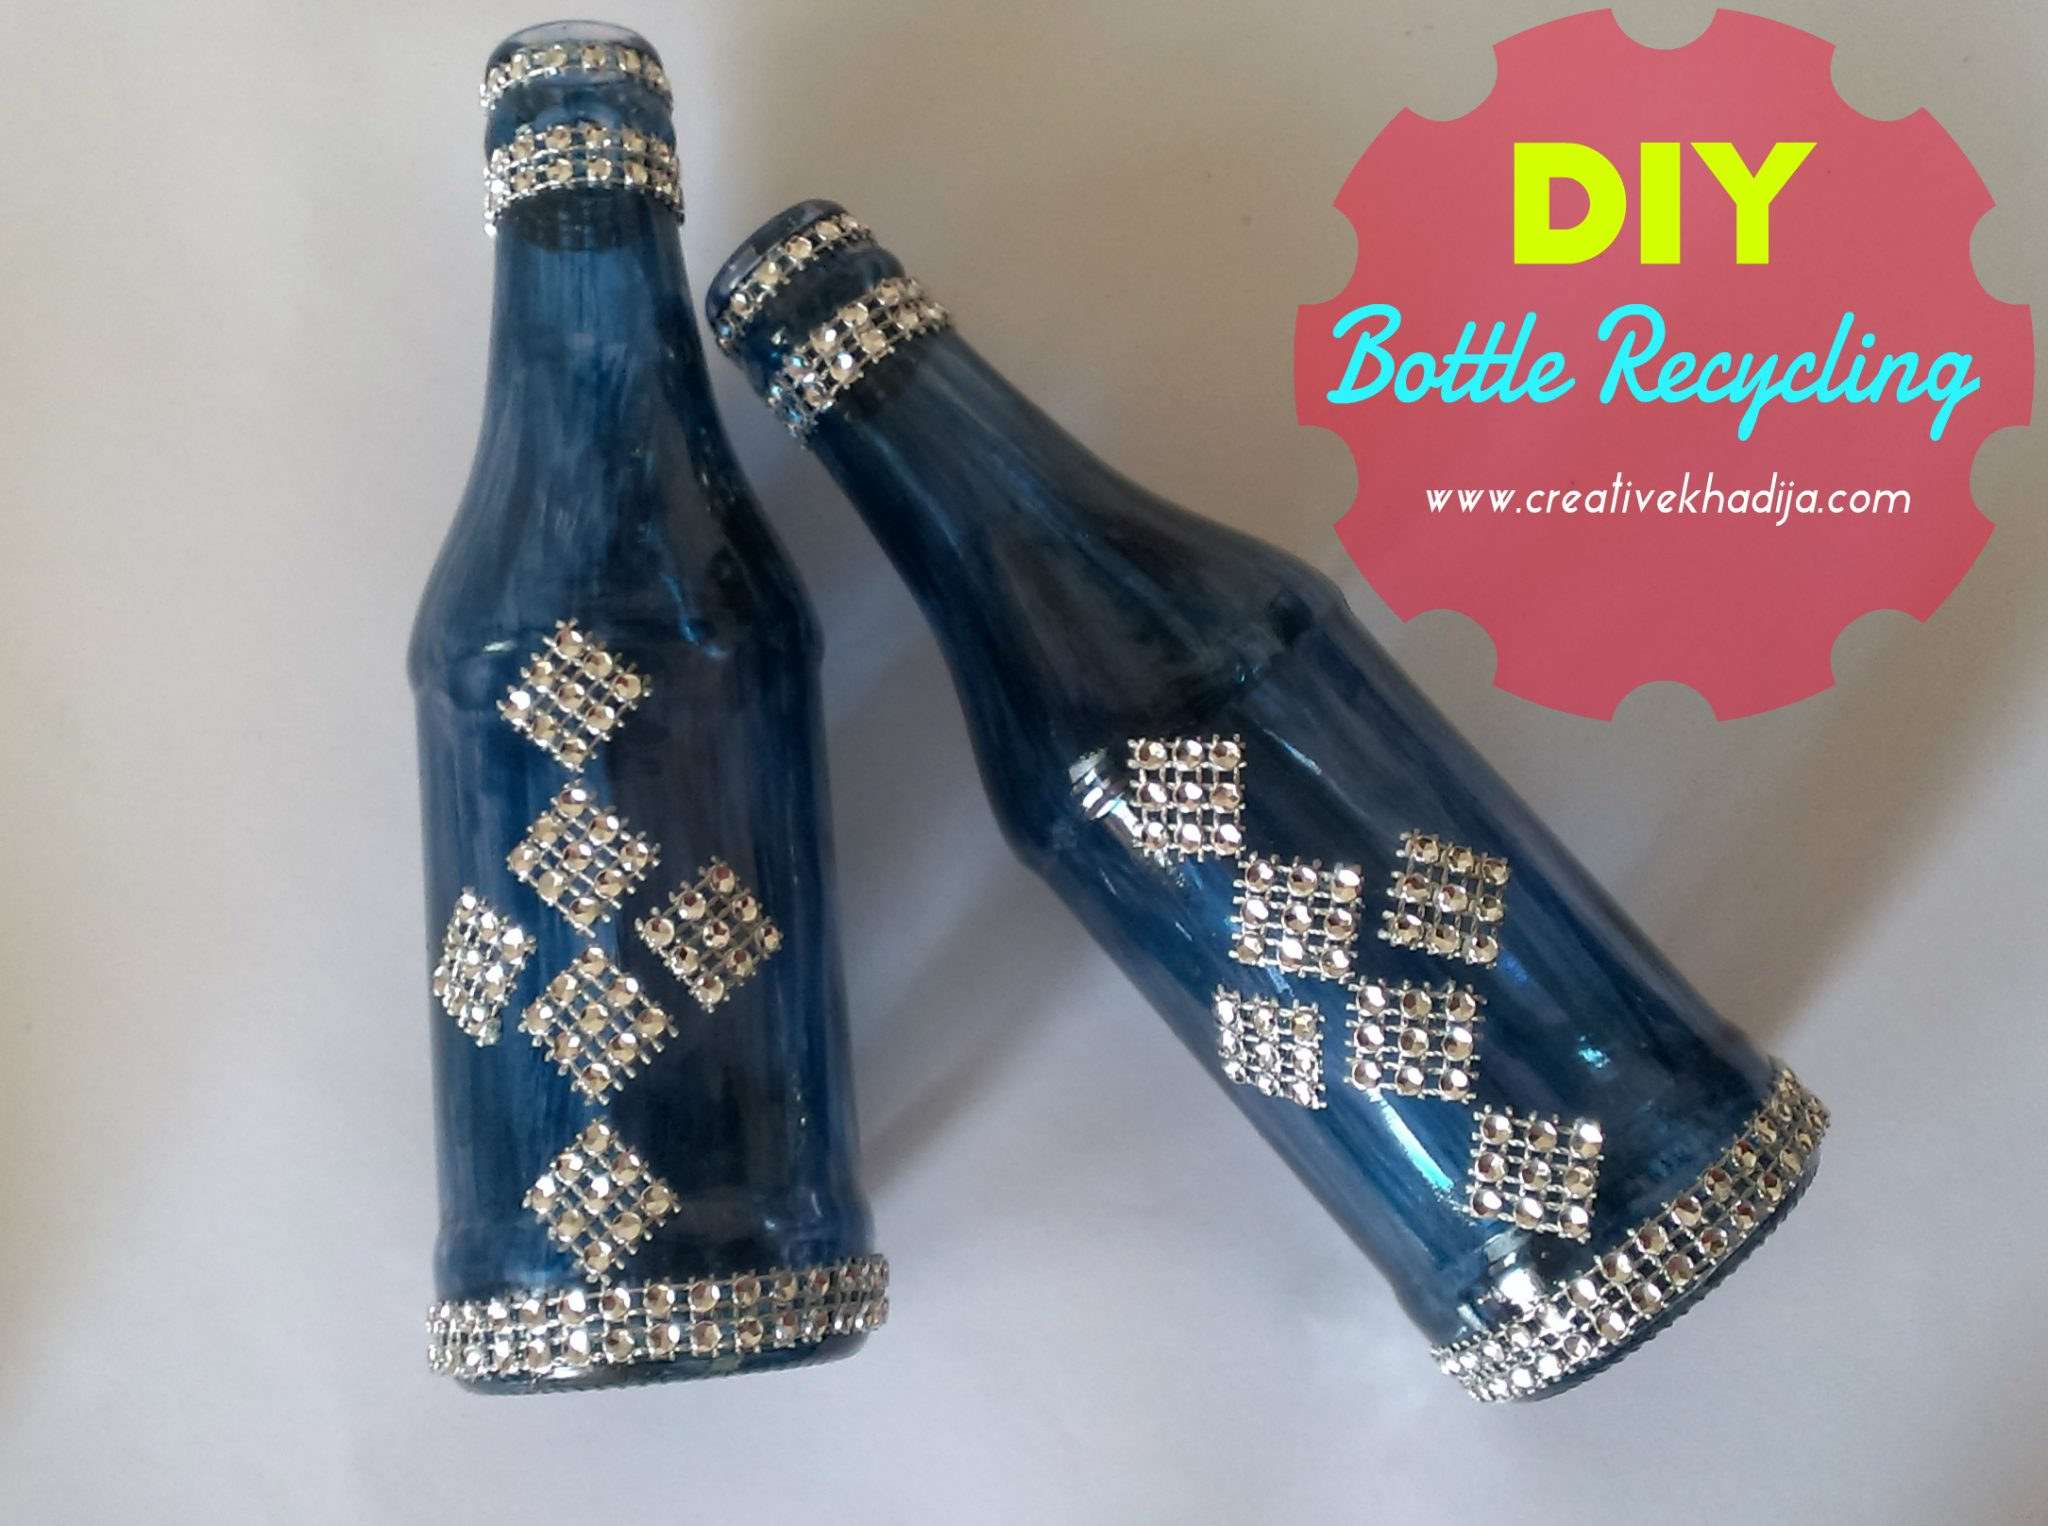 DIY Glass Painted Bottles Decoration-Recycling ideas